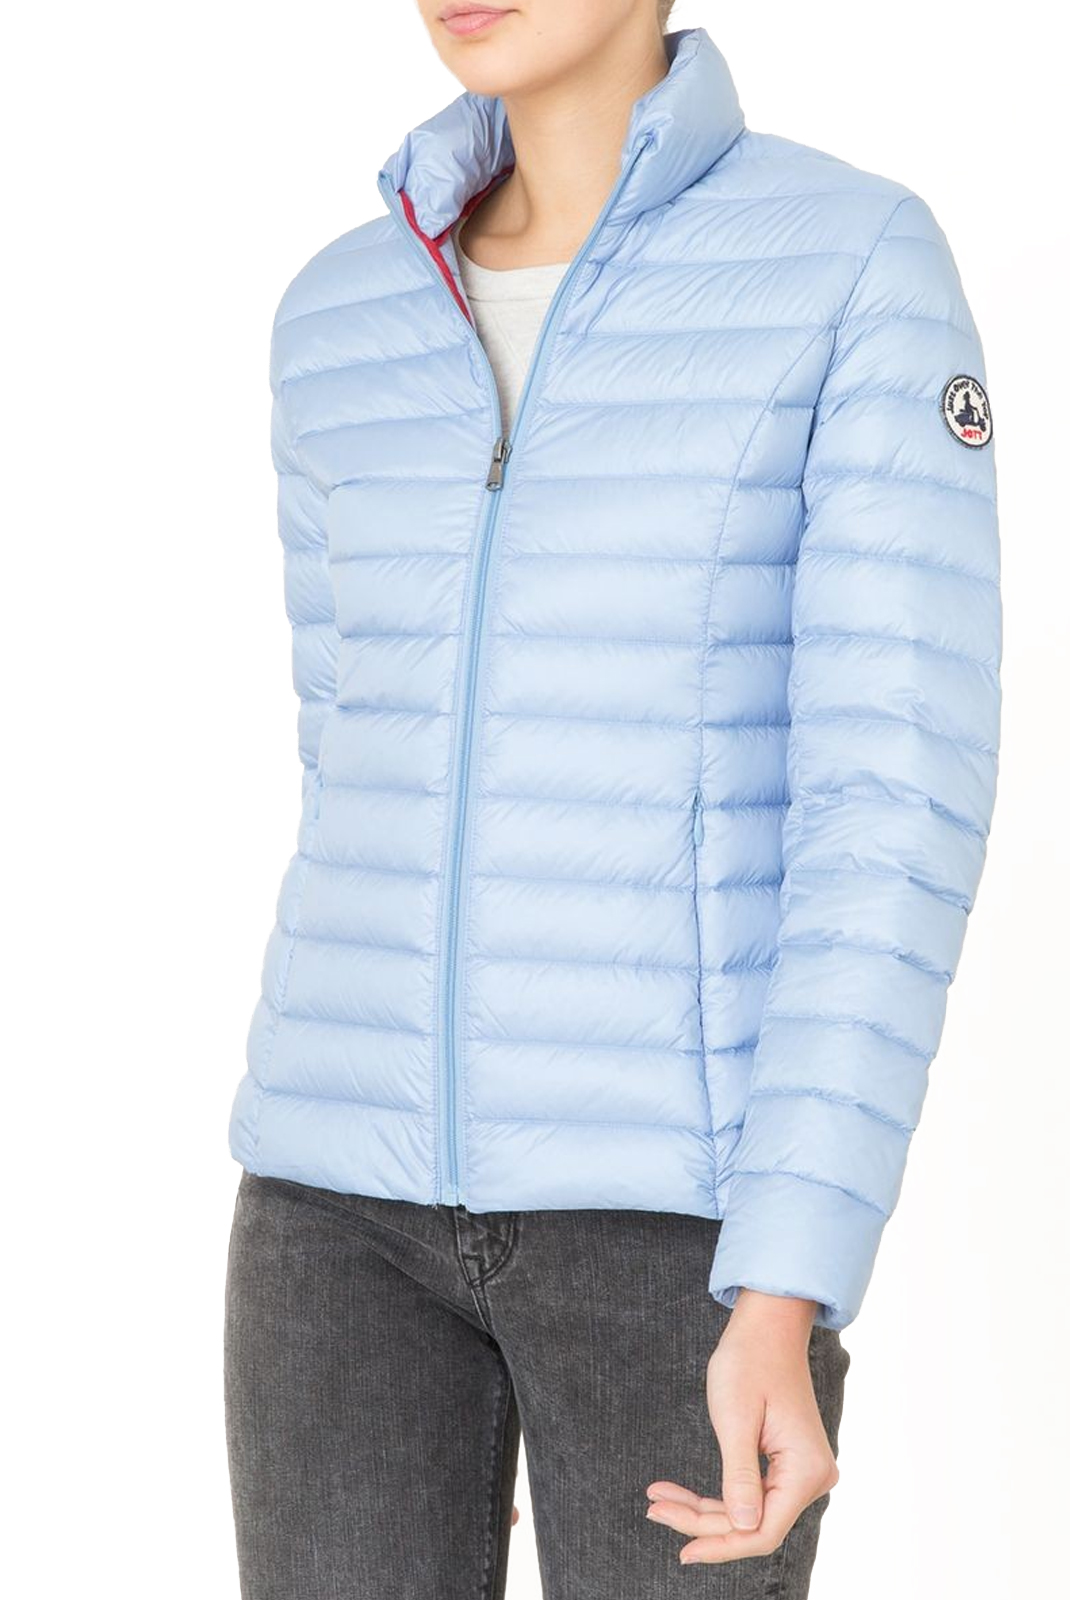 Blouson  Just over the top CHA 105 CIEL